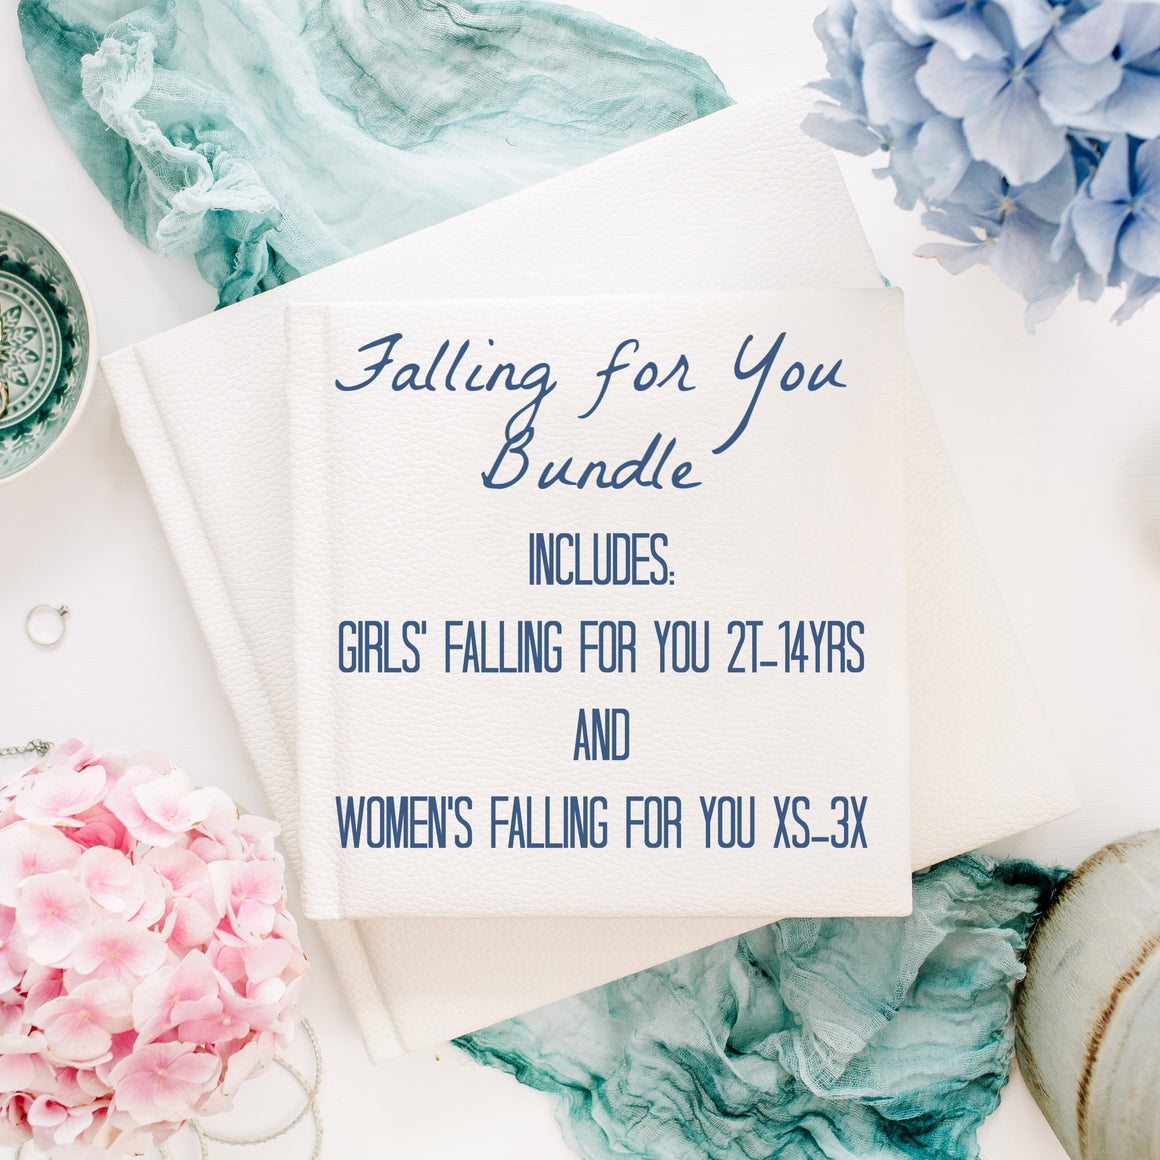 Falling for You Bundle